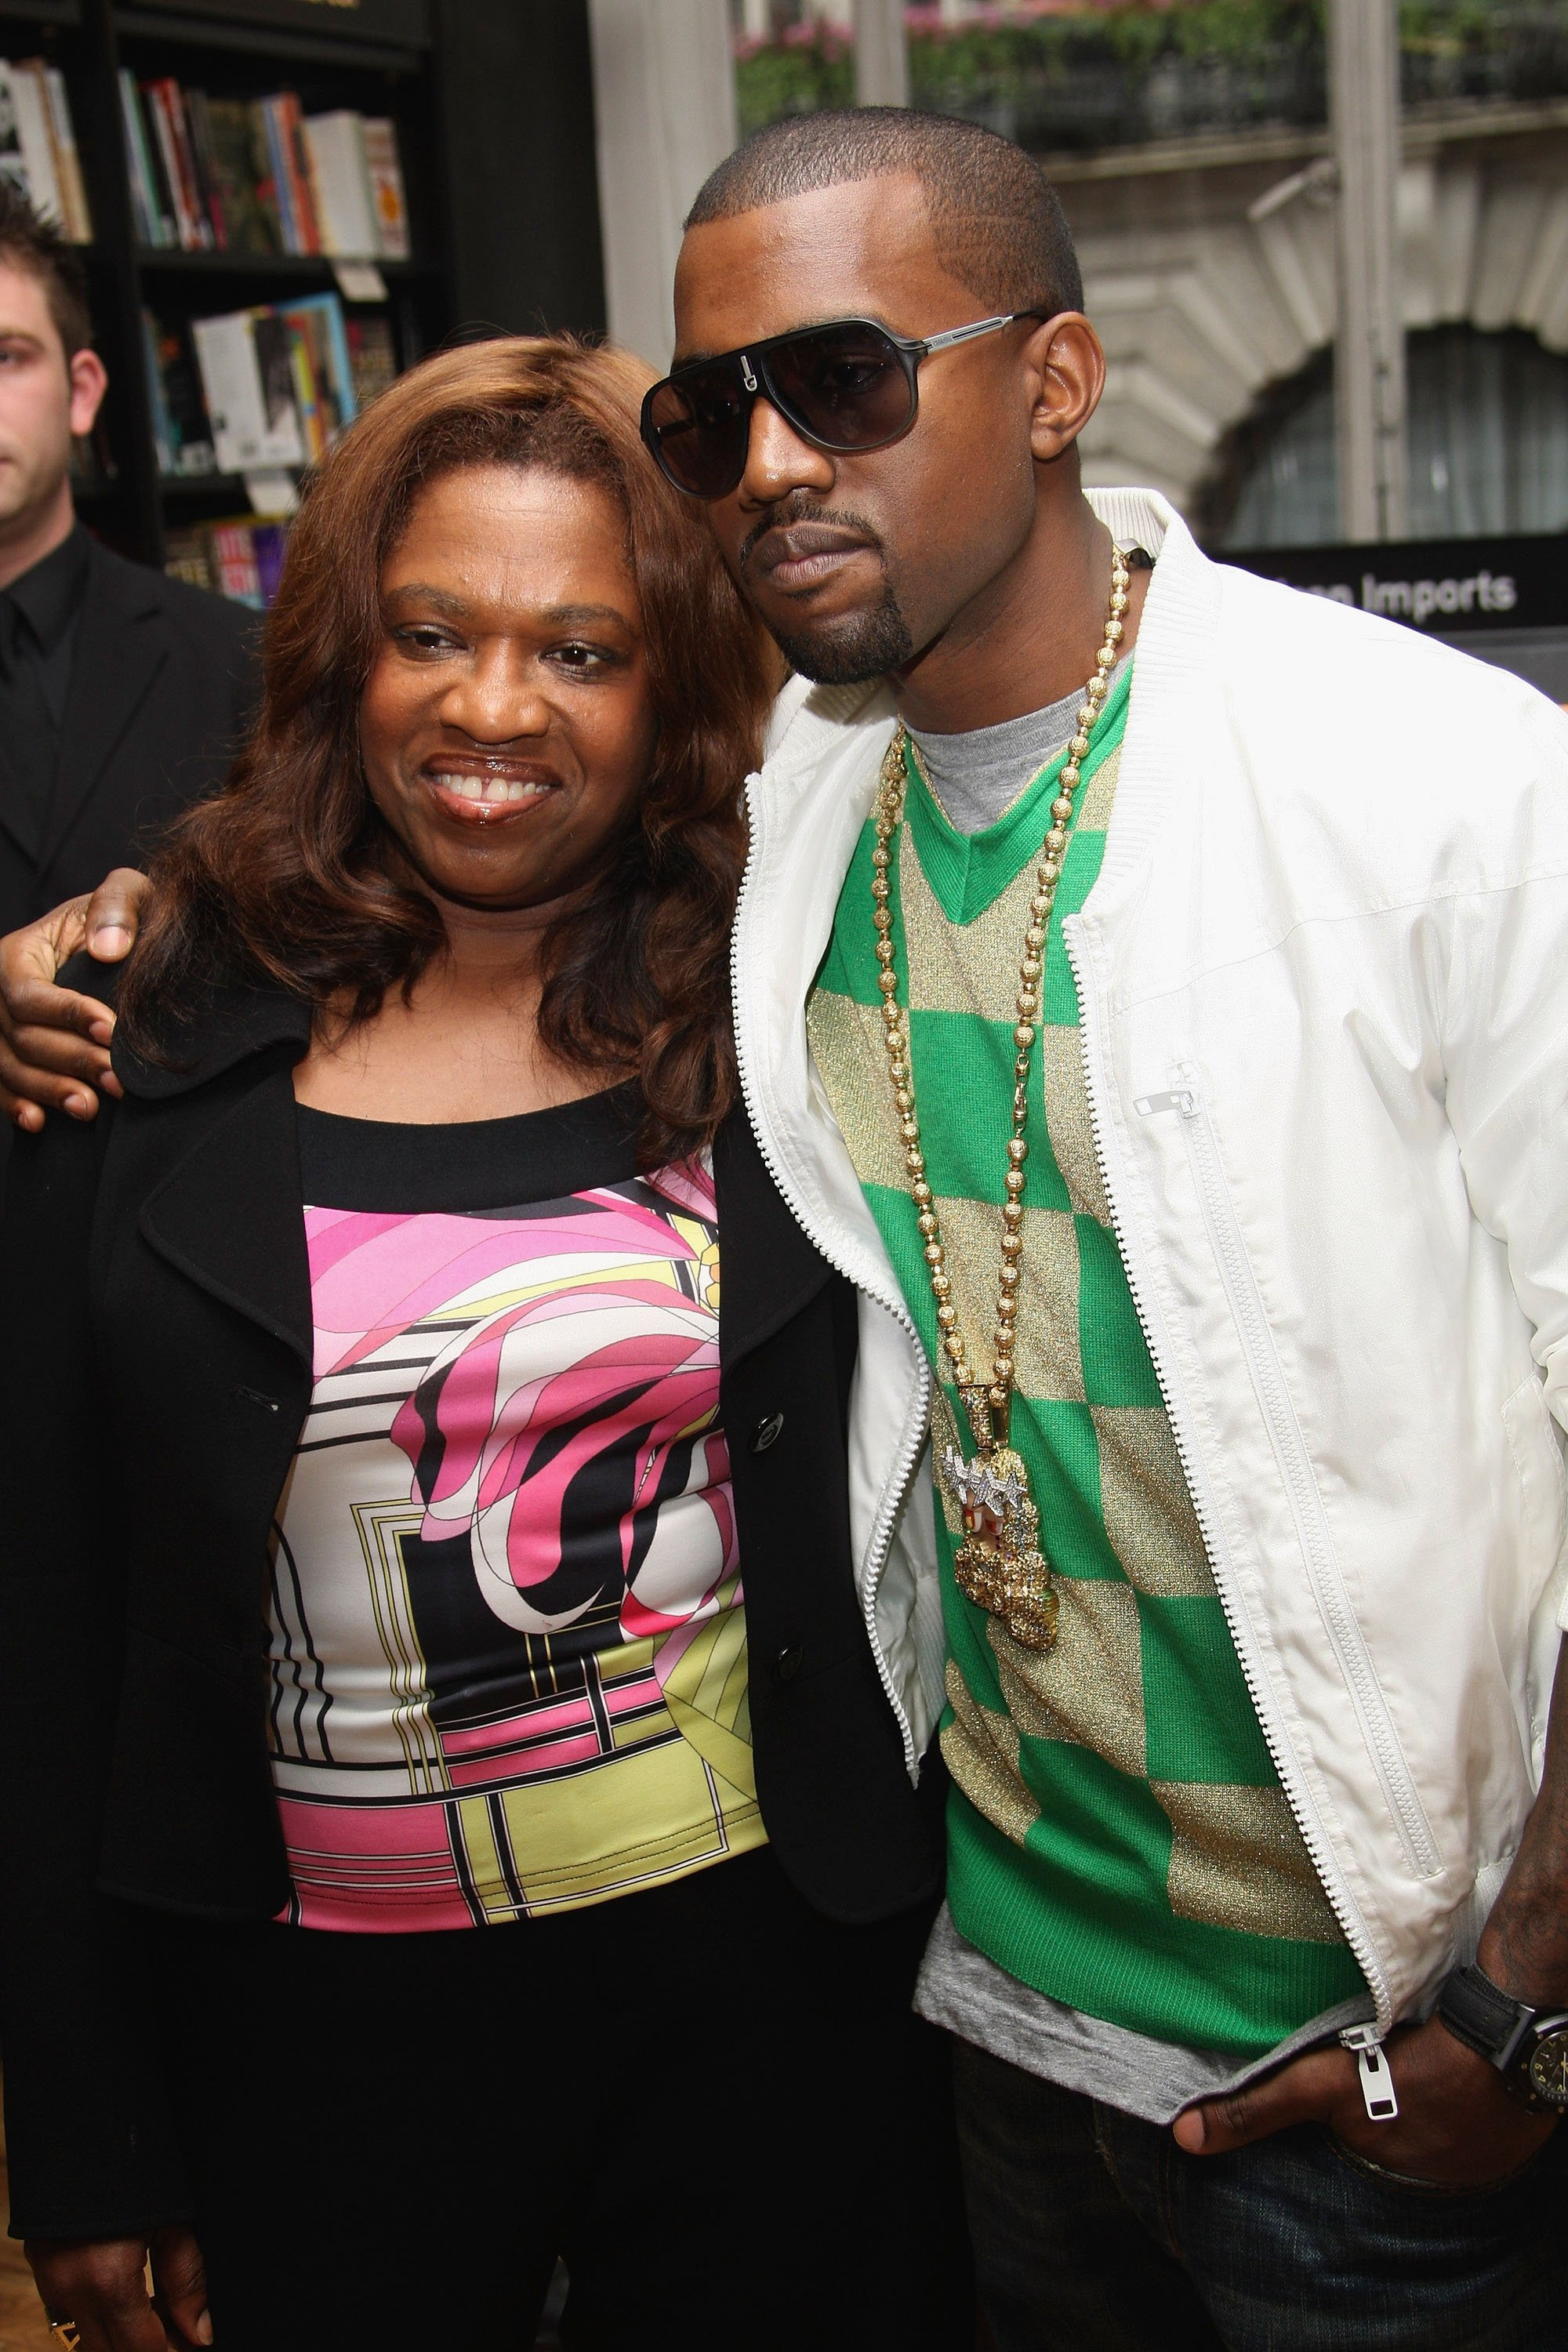 Kanye West poses with his mother Donda prior to signing copies of 'Raising Kanye: Life Lessons From The Mother Of A Hip-Hop Superstar' at Waterstones on June 30, 2007, in London.| Source: Getty Images.